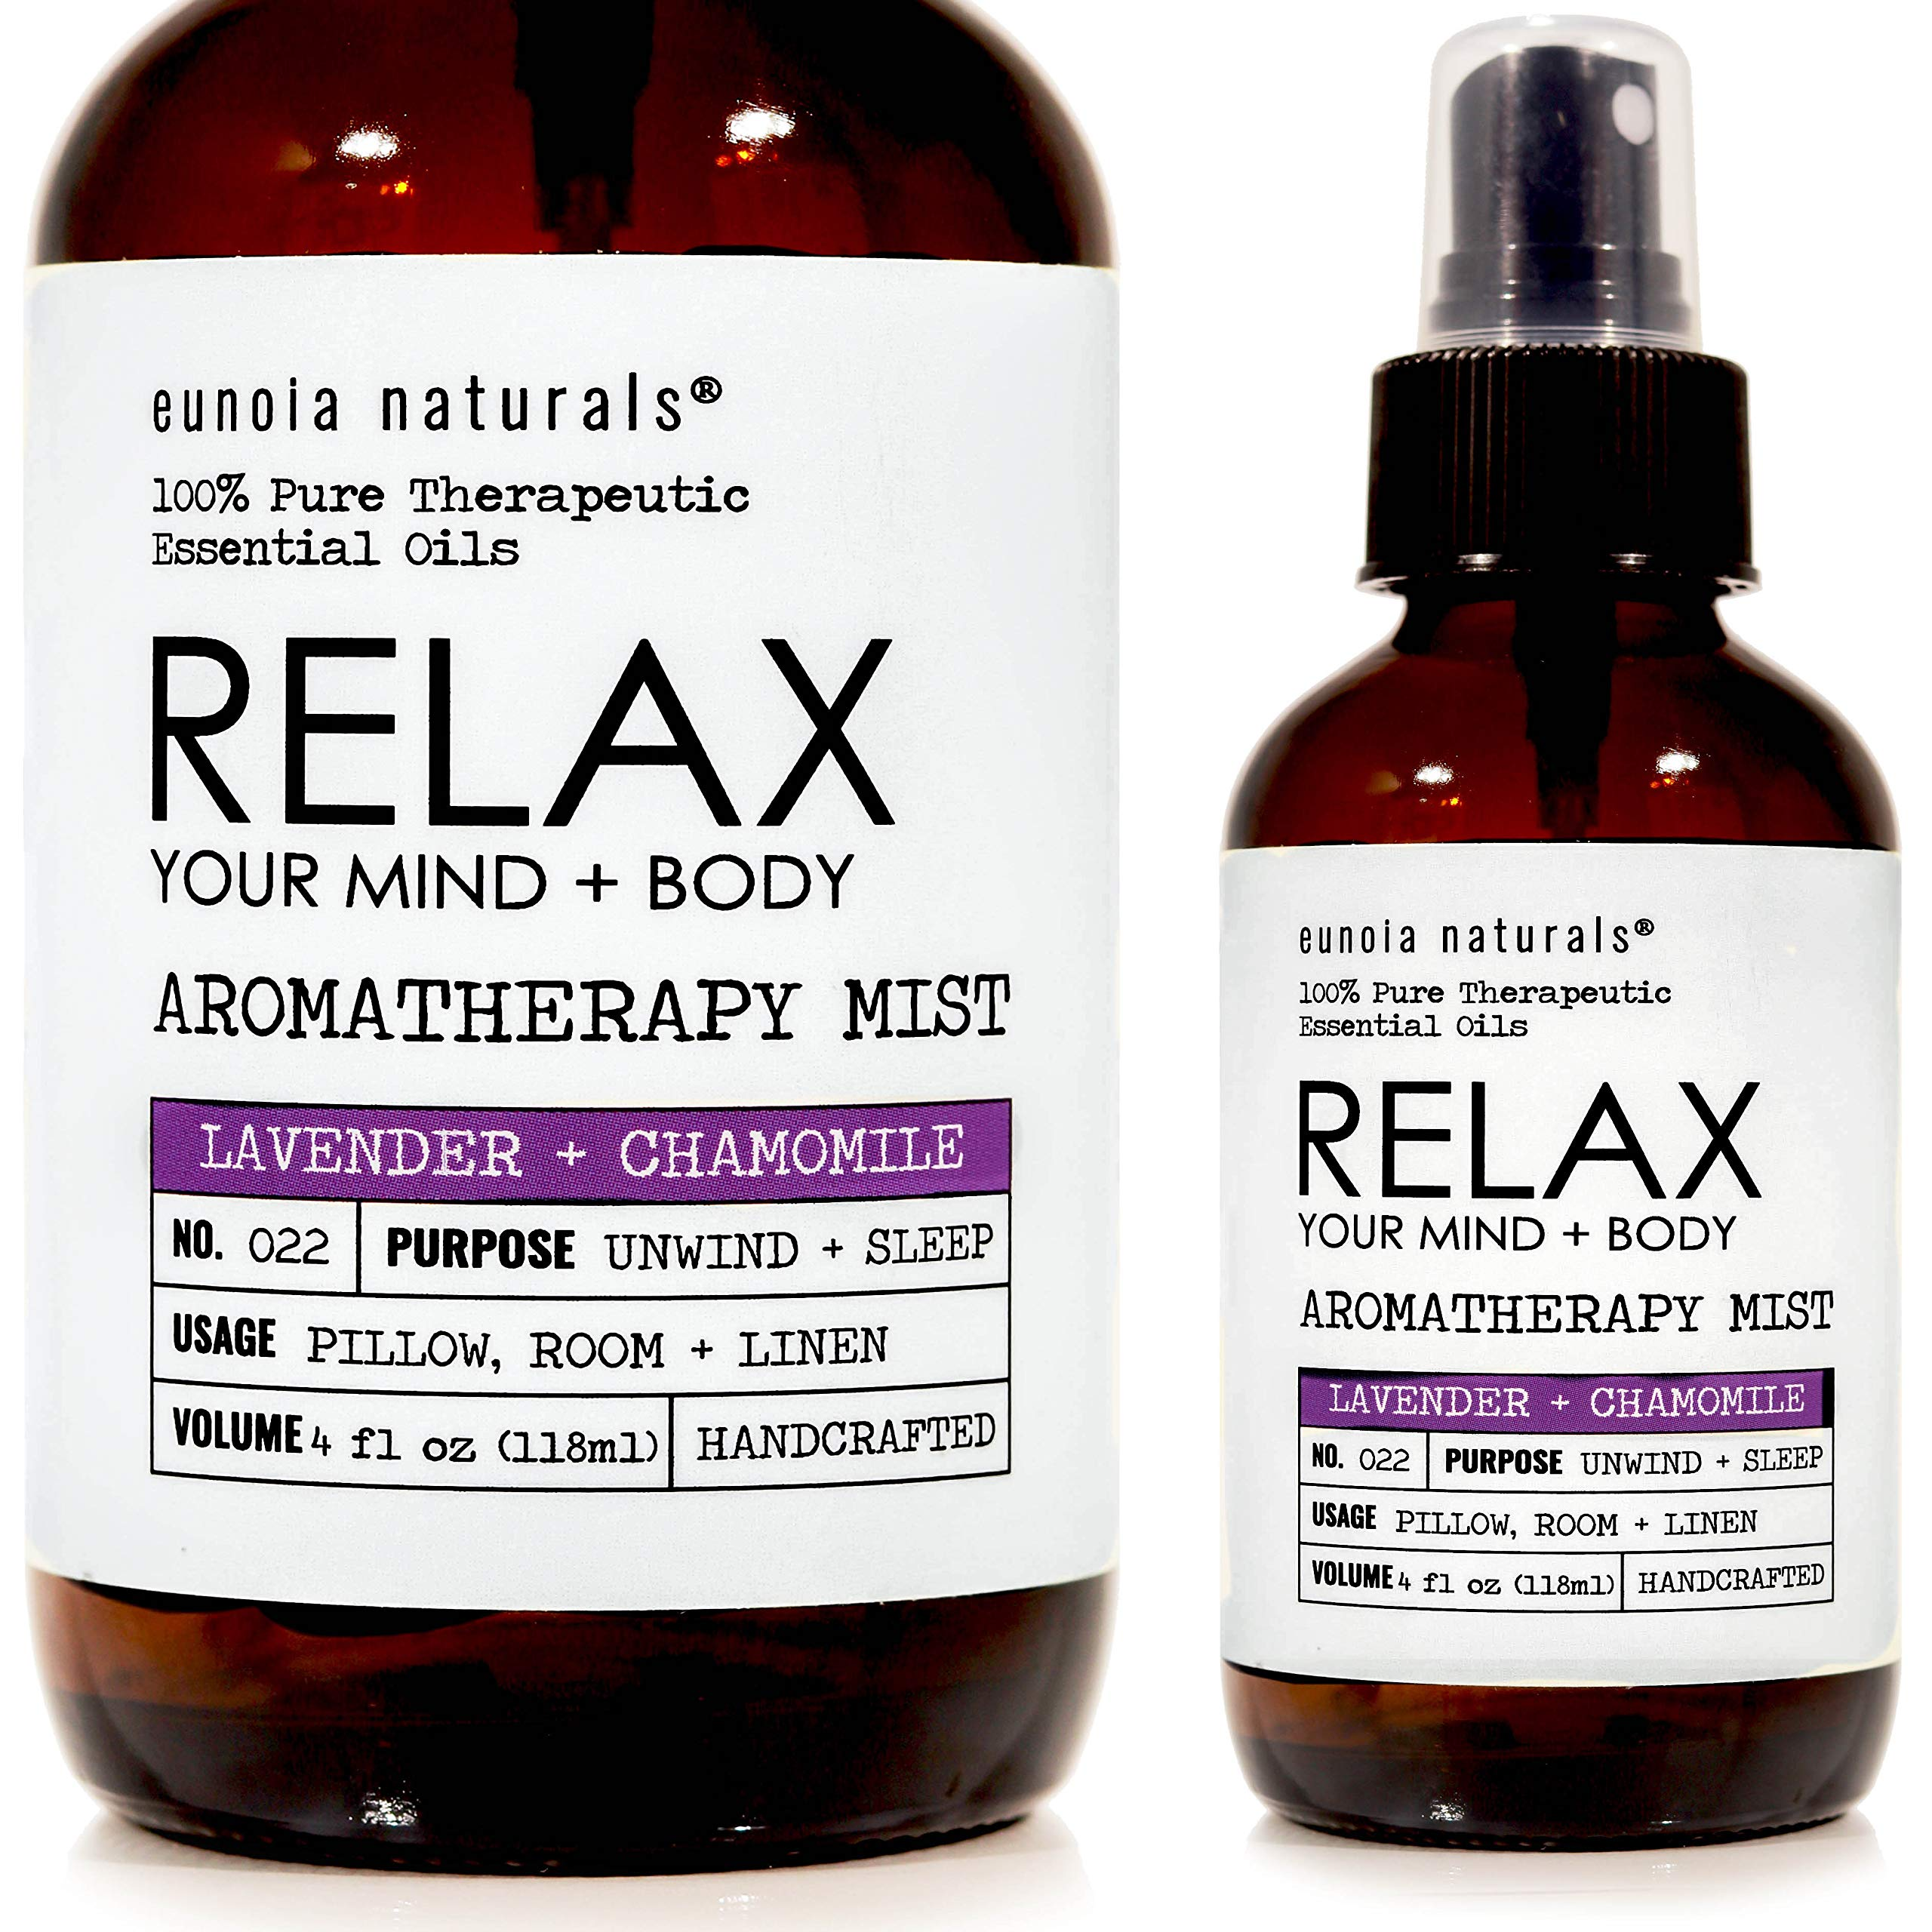 Relax- Lavender + Chamomile Essential Oil Spray, Lavender Sleep Spray, Soothing + Calming Mist, Free 30 Minute Sleep Audio Included, Lavender Pillow + Linen Spray, 4oz Glass Bottle by Eunoia Naturals